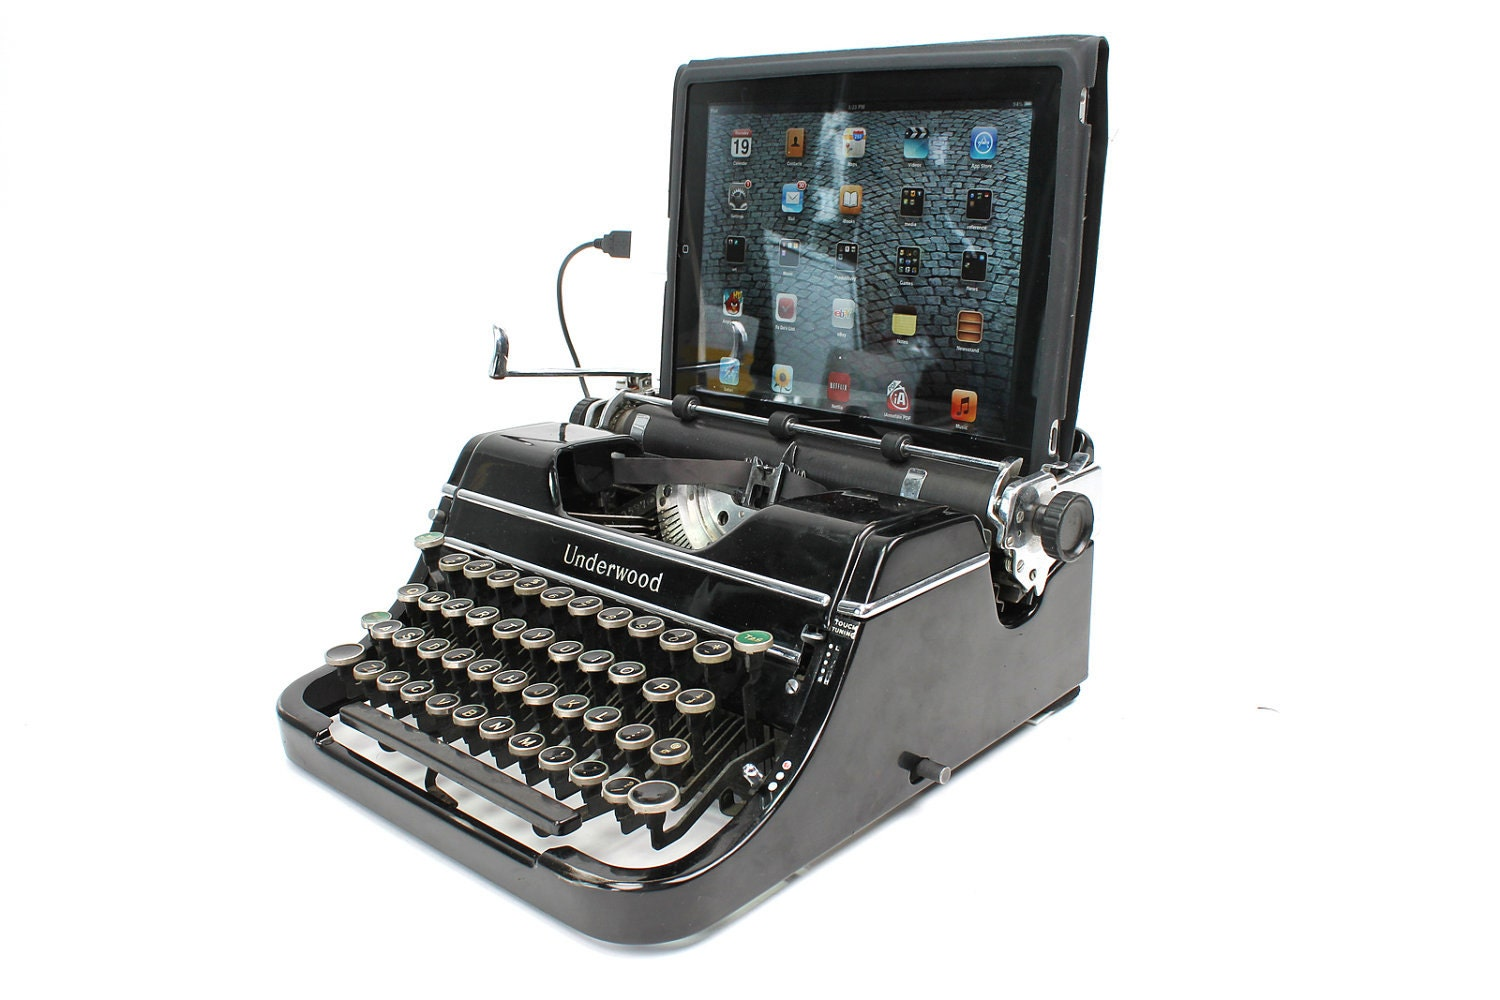 USB Typewriter Computer Keyboard and iPad Dock by ... | 1500 x 1000 jpeg 193kB